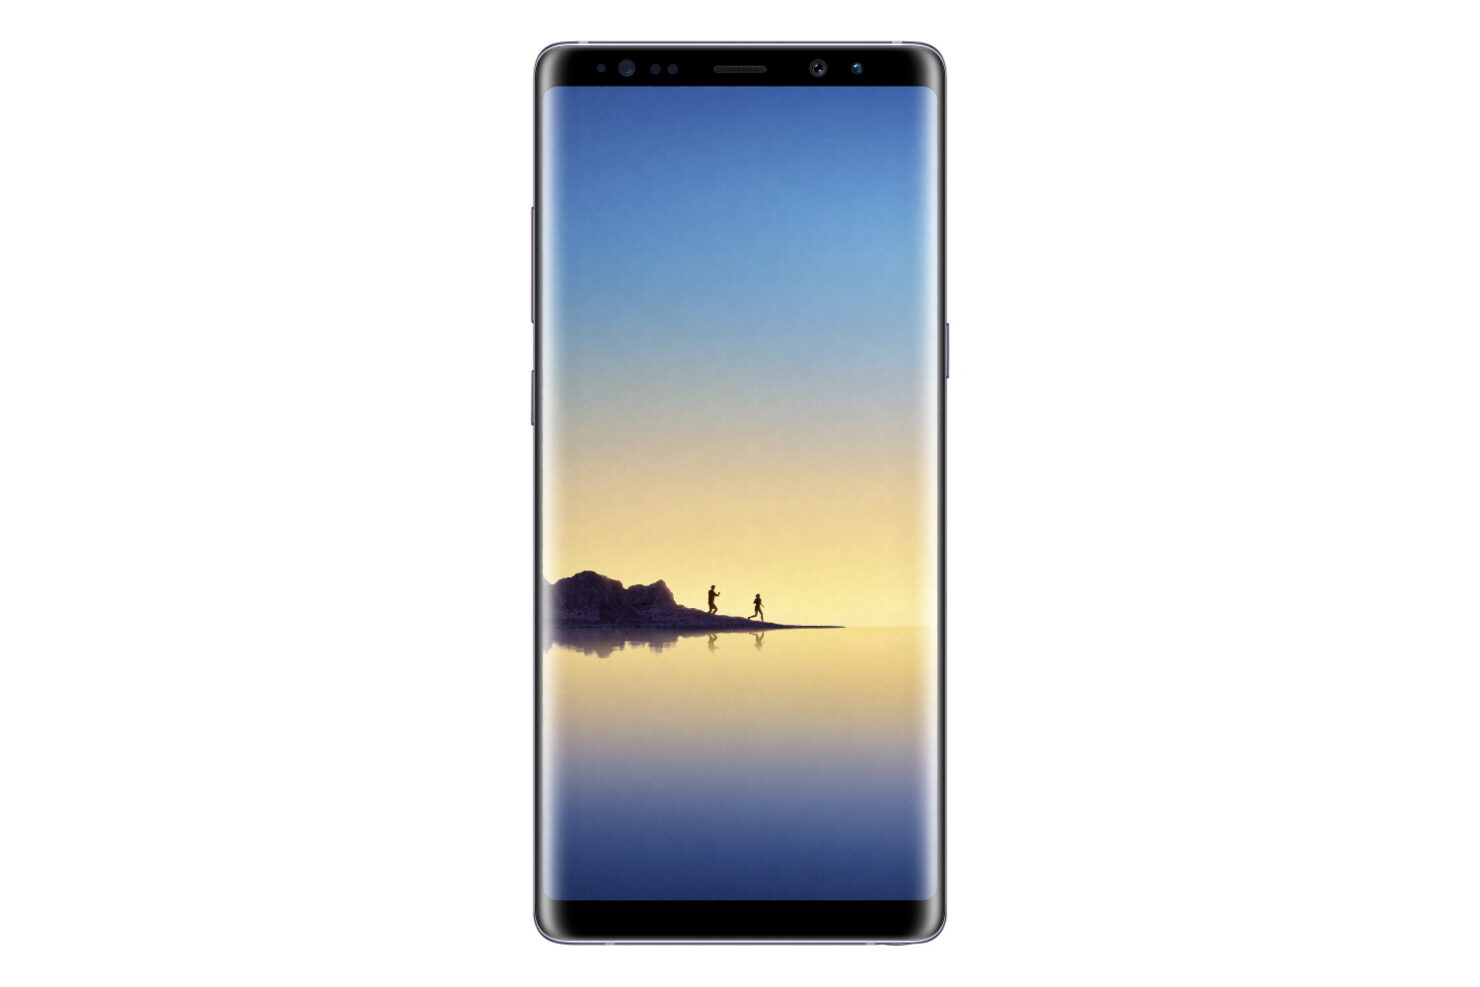 galaxynote8_front_gray_hq